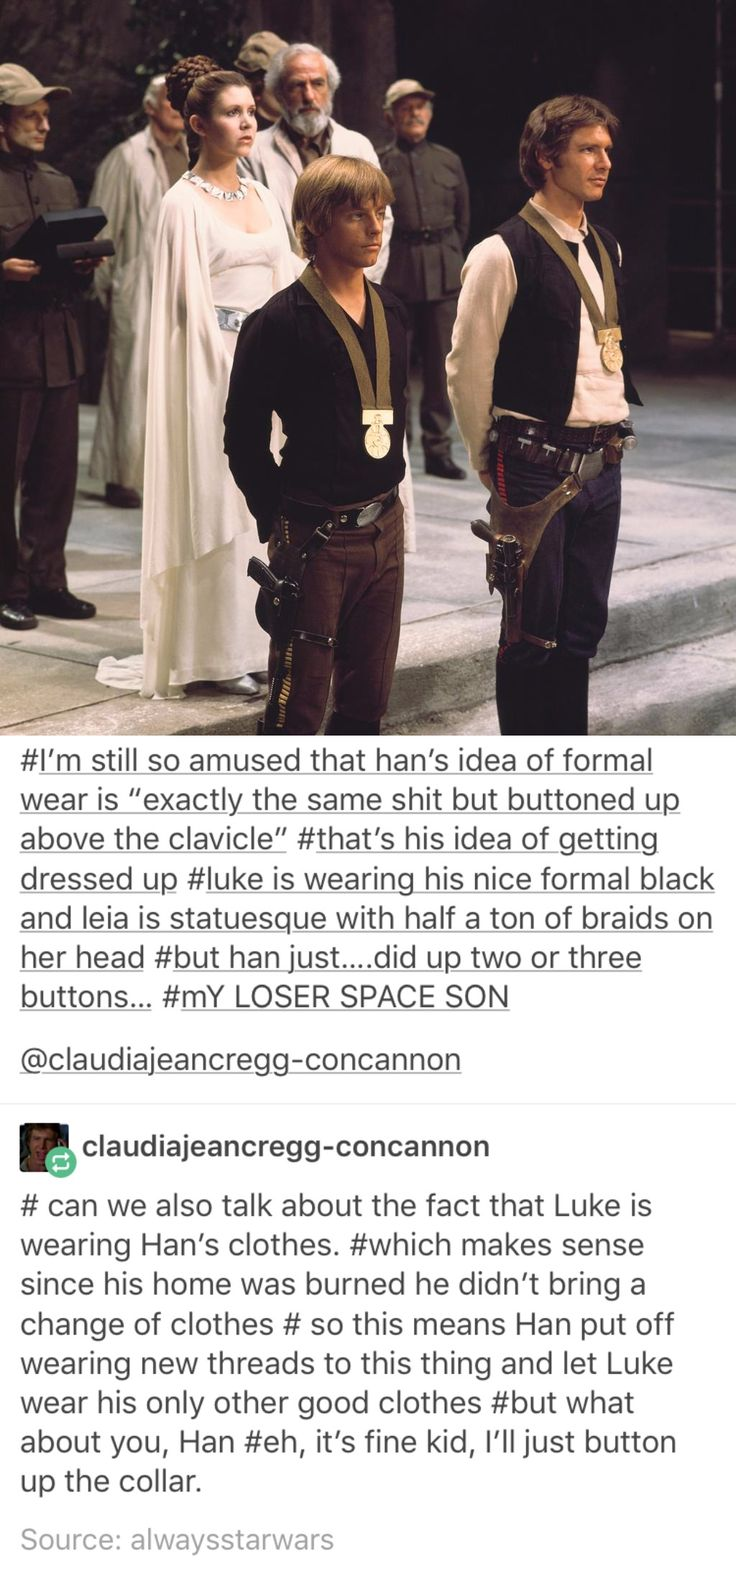 aw, I never thought of it at this angle before. it makes me even more sad that luke won't be able to see han again since he died on the starkiller base. :(